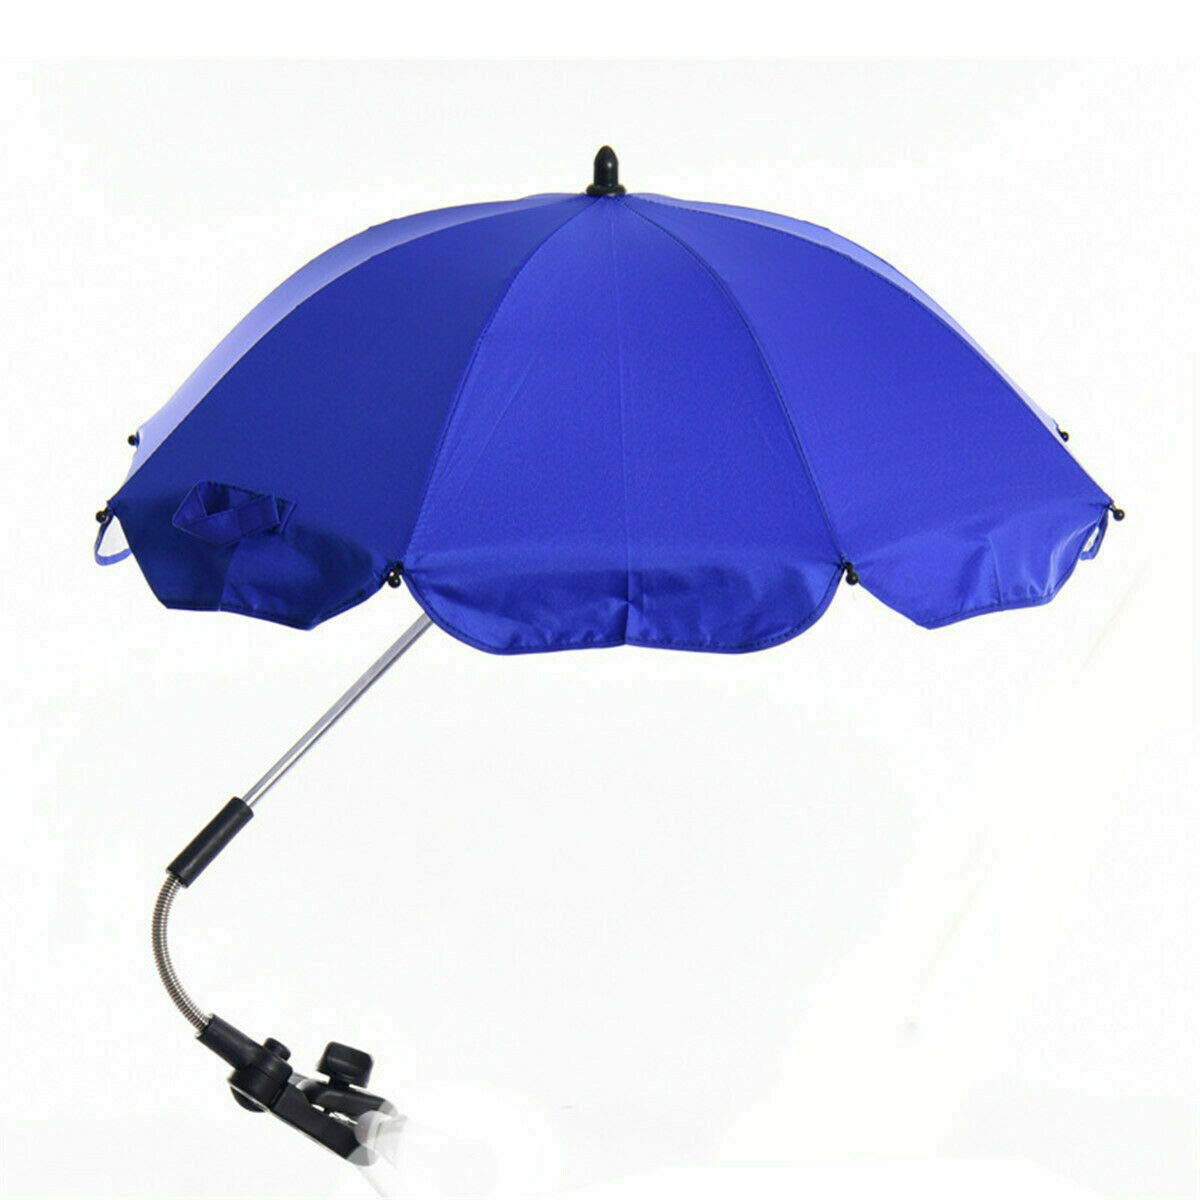 Global Supplies Present Flexible Baby Sun Umbrella Parasol Buggy Pushchair Shade in Blue